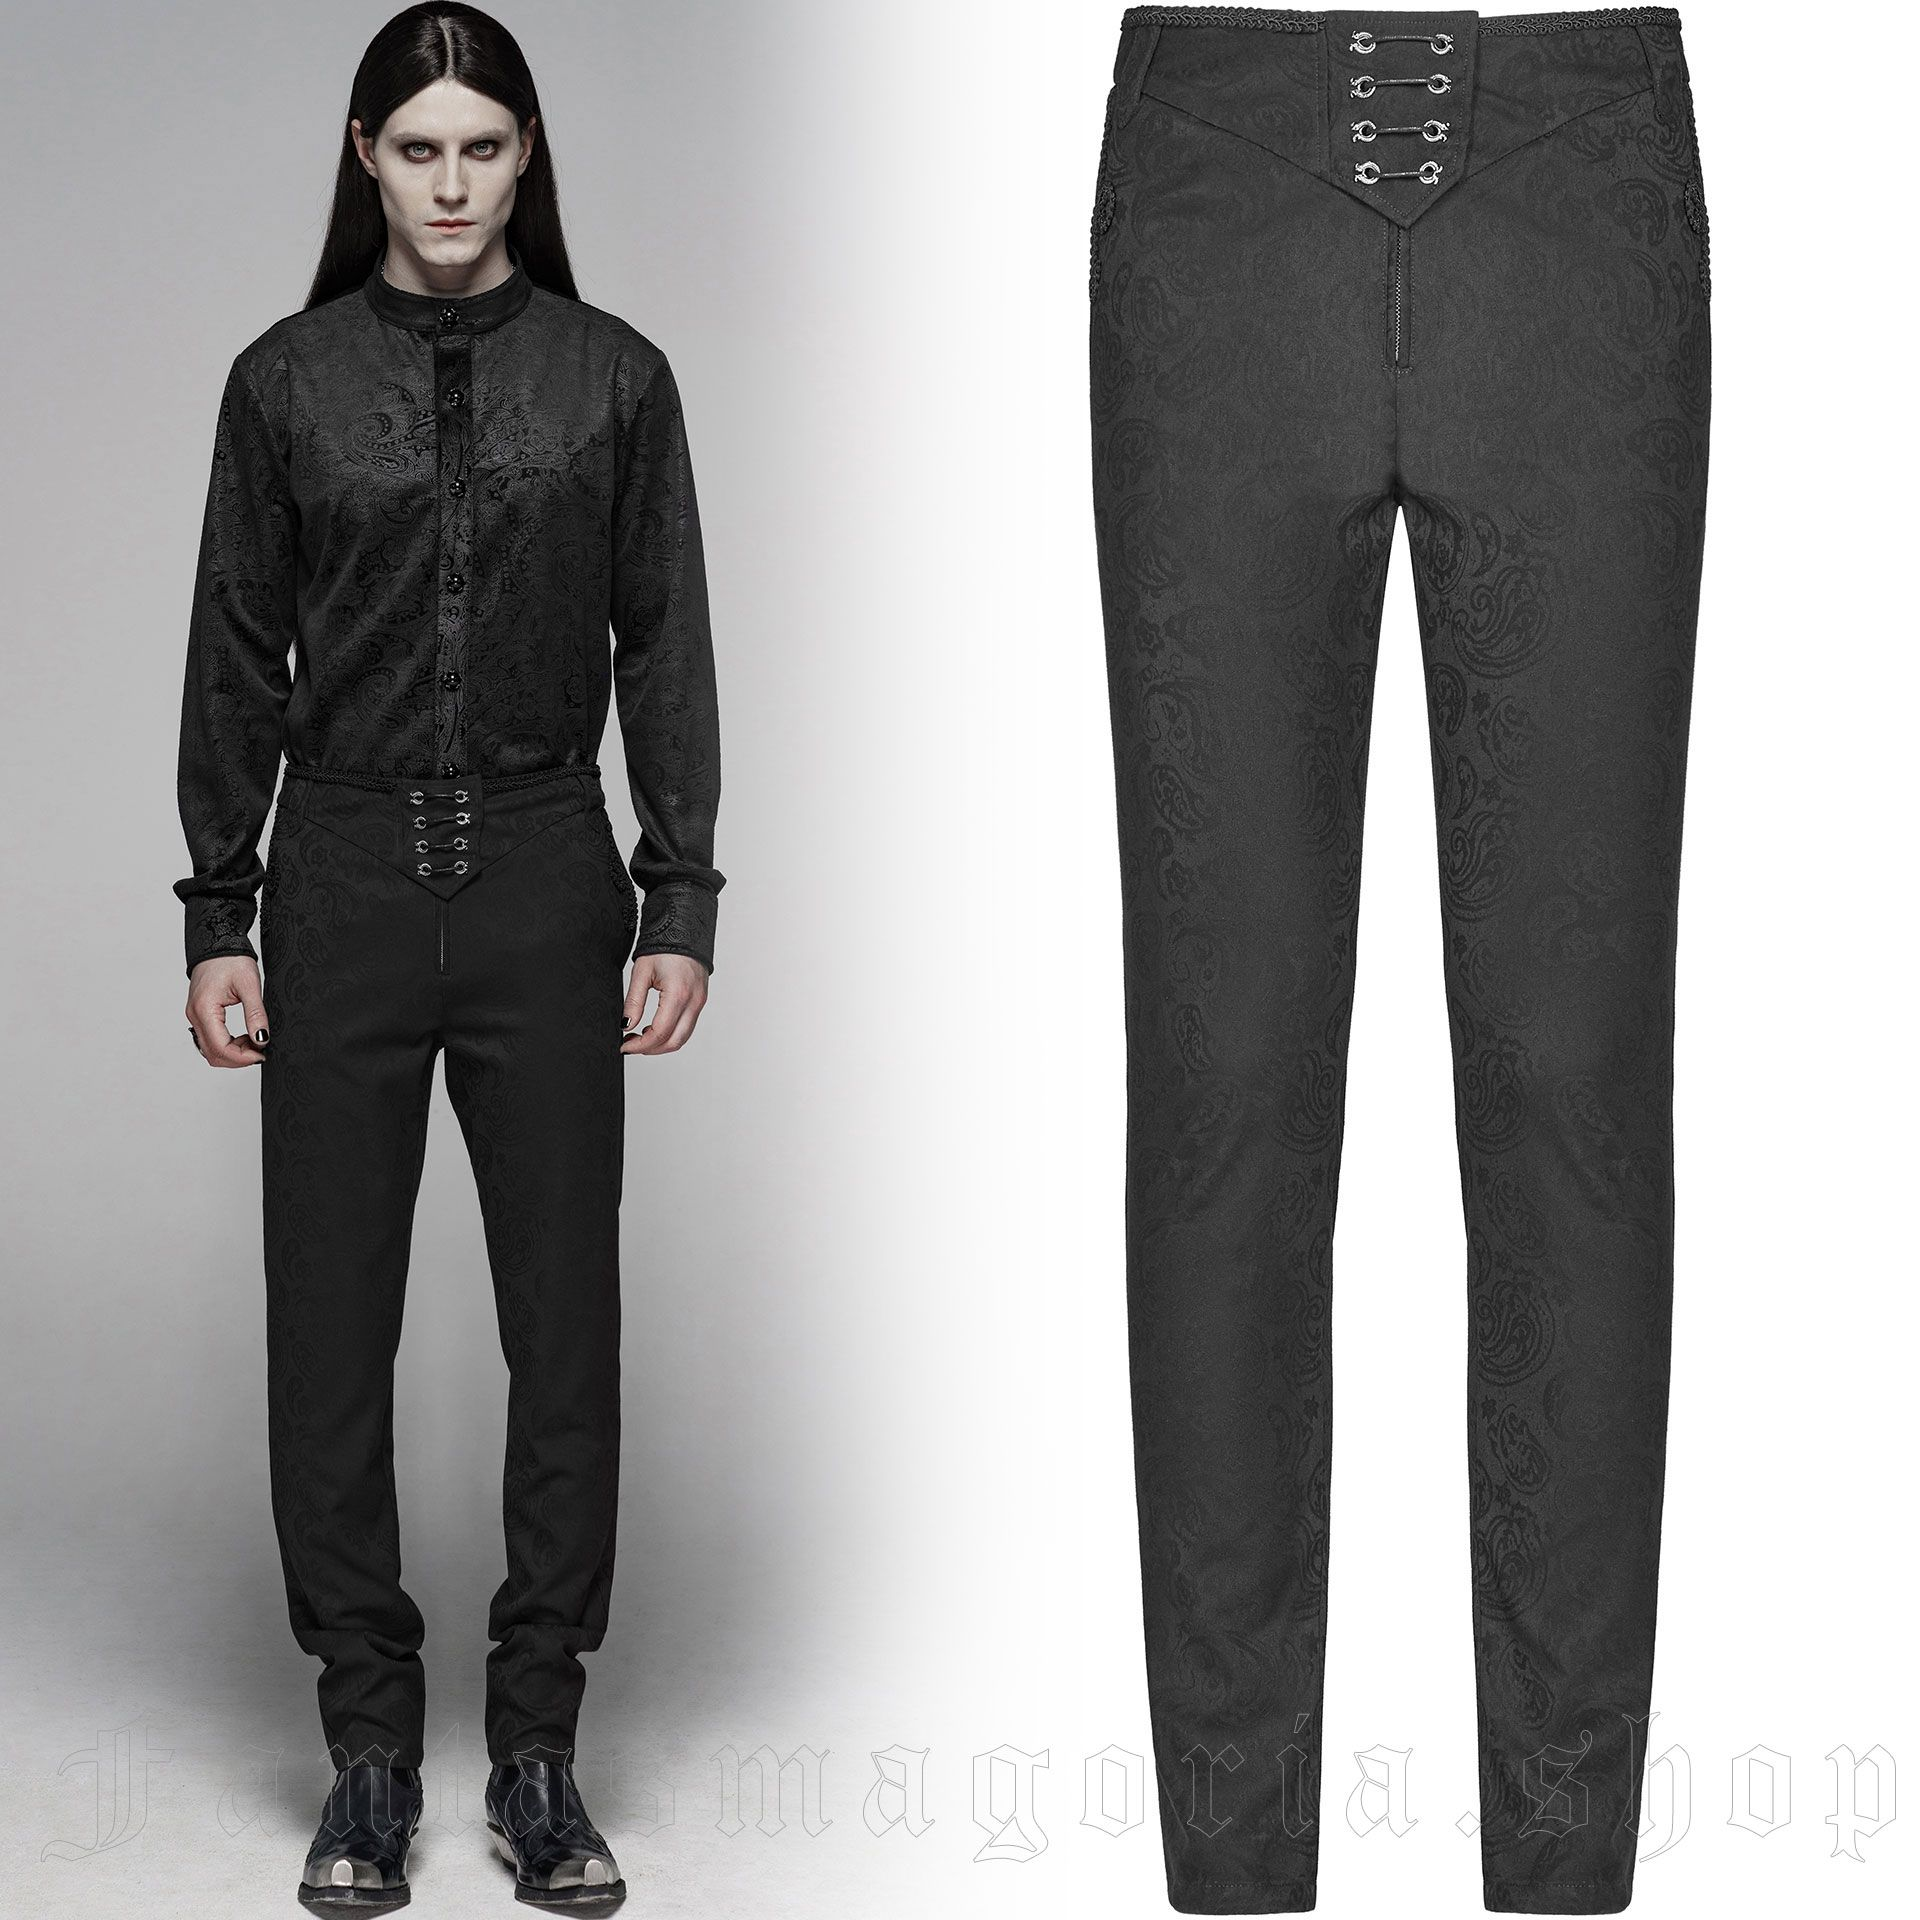 men's Noctivagus Trousers by PUNK RAVE brand, code: WK-385/BK